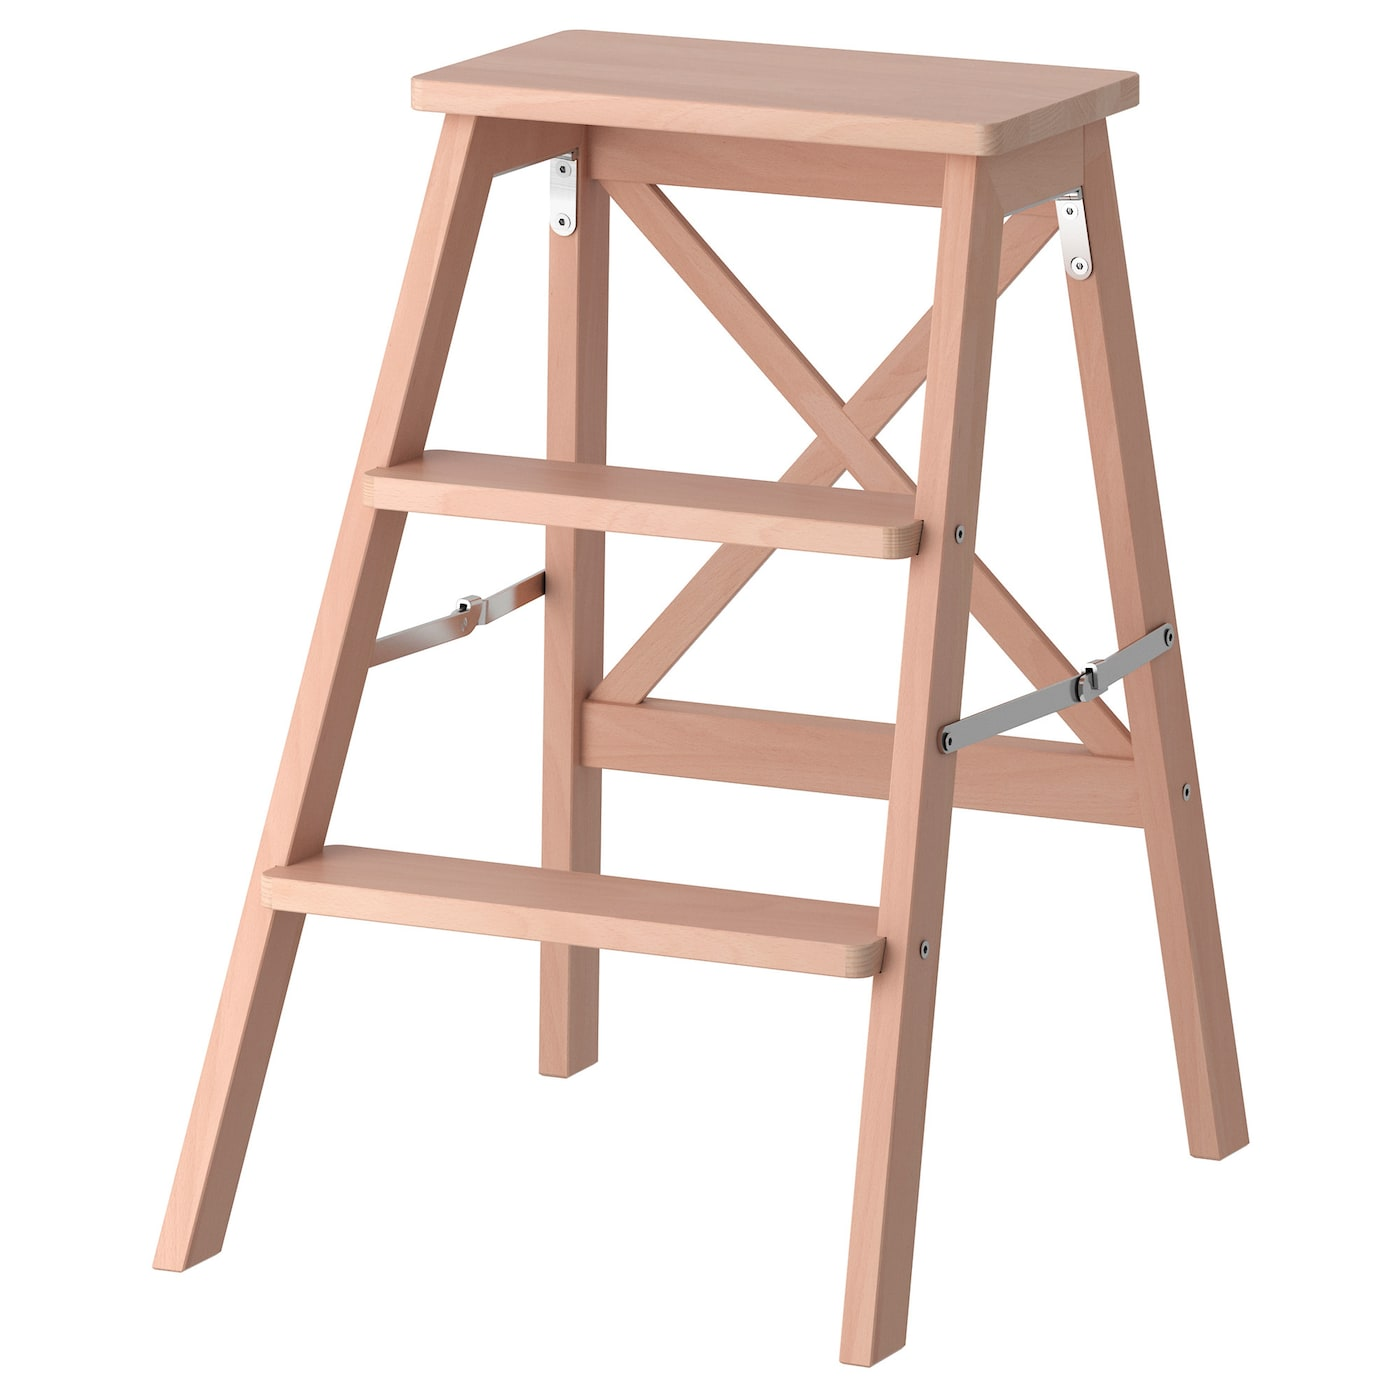 IKEA BEKVÄM stepladder 3 steps Can be folded to save space.  sc 1 st  Ikea : bekvam step stool - islam-shia.org